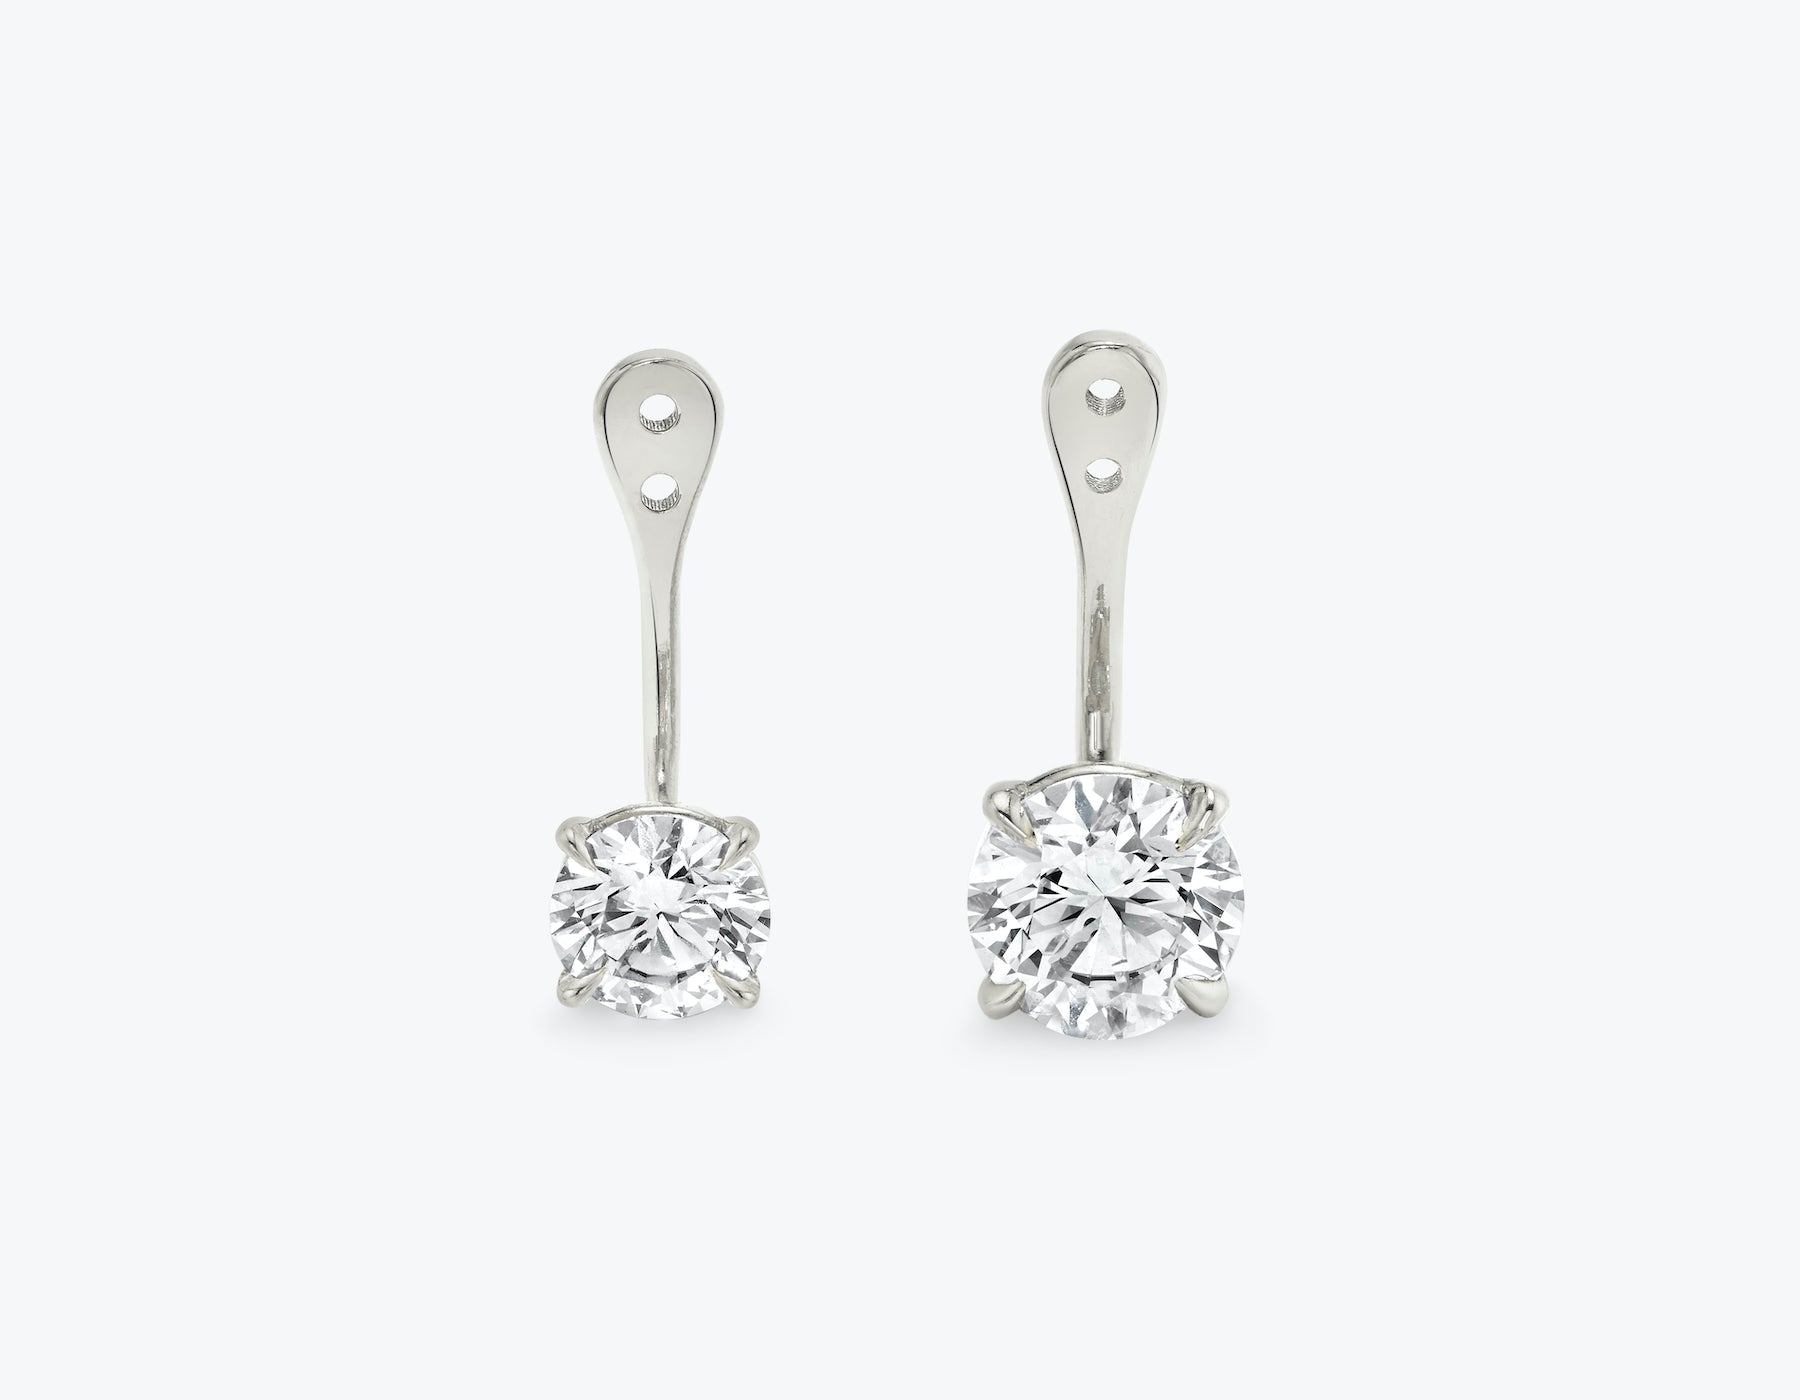 Vrai solitaire round brilliant diamond drop ear jackets made in 14k solid gold with sustainably created diamonds, 14K White Gold